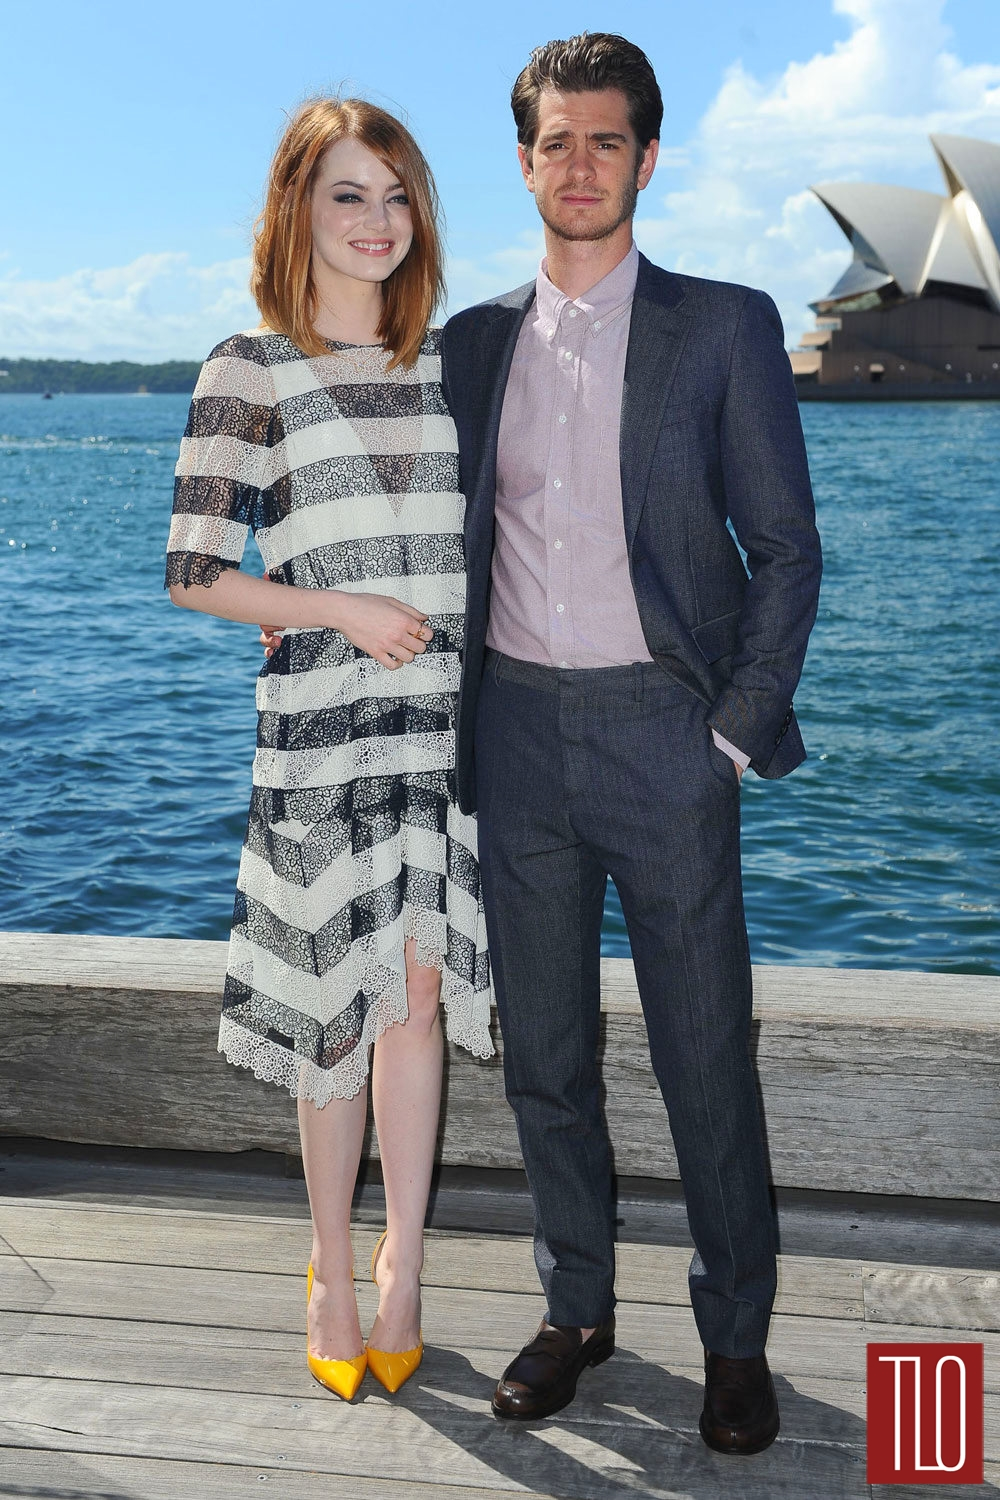 Emma-Stone-Andrew-Garfield-Amazing Spider-Man-Australia-Photo-Call-Tom-Lorenzo-Site-TLO (1)